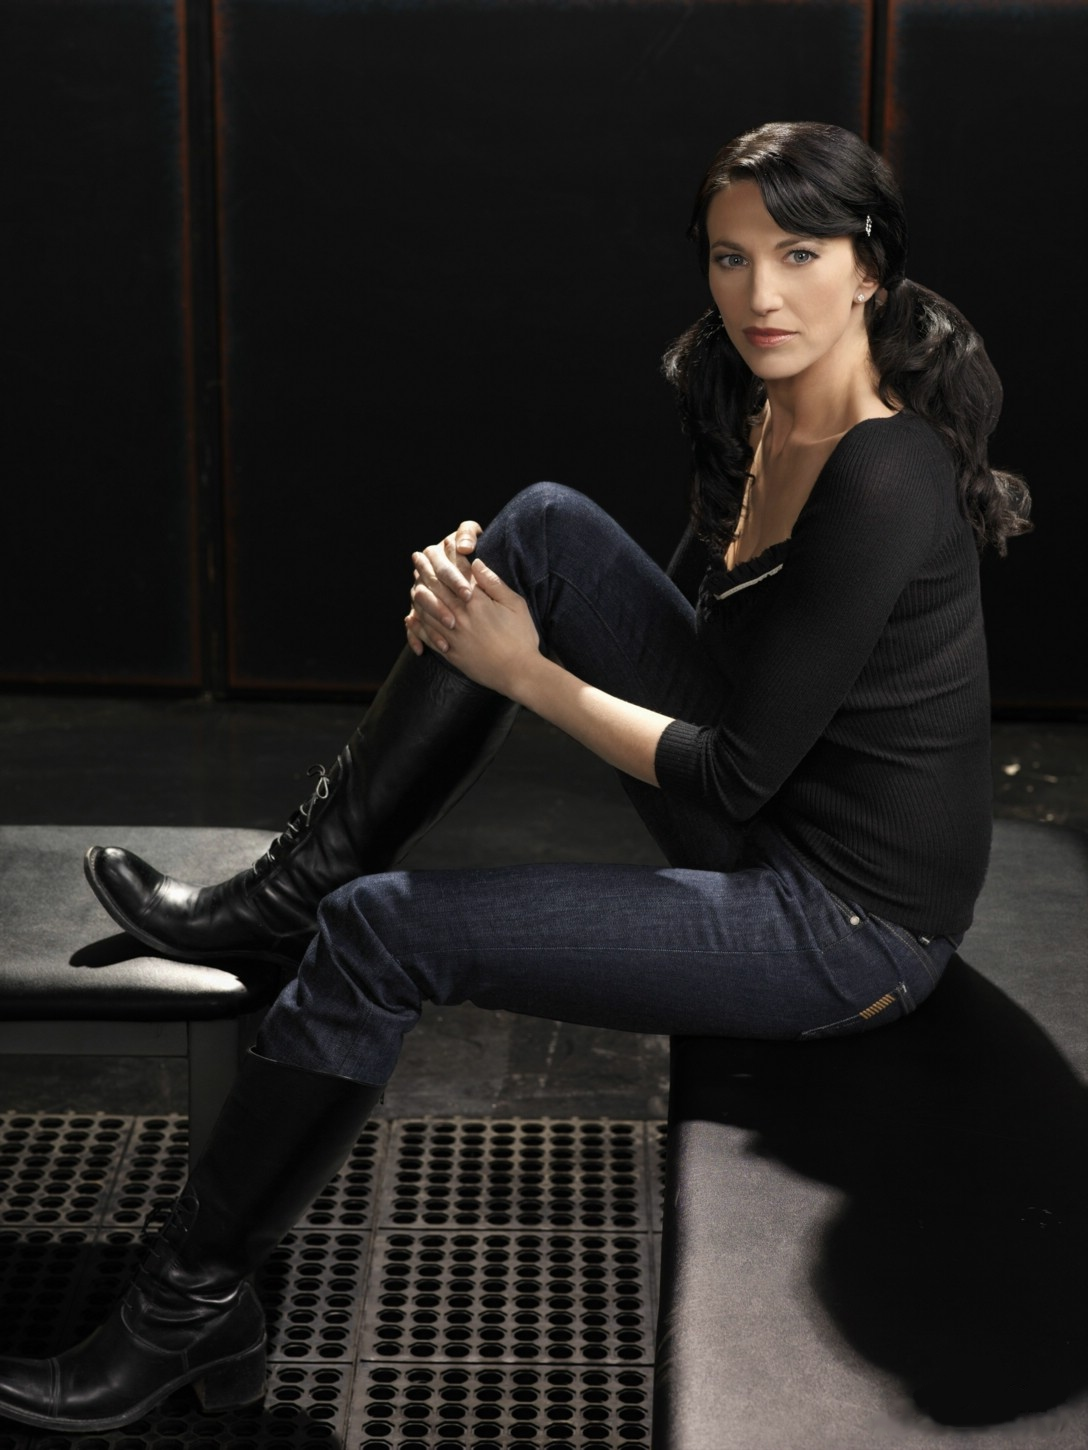 Claudia Black photo #141934